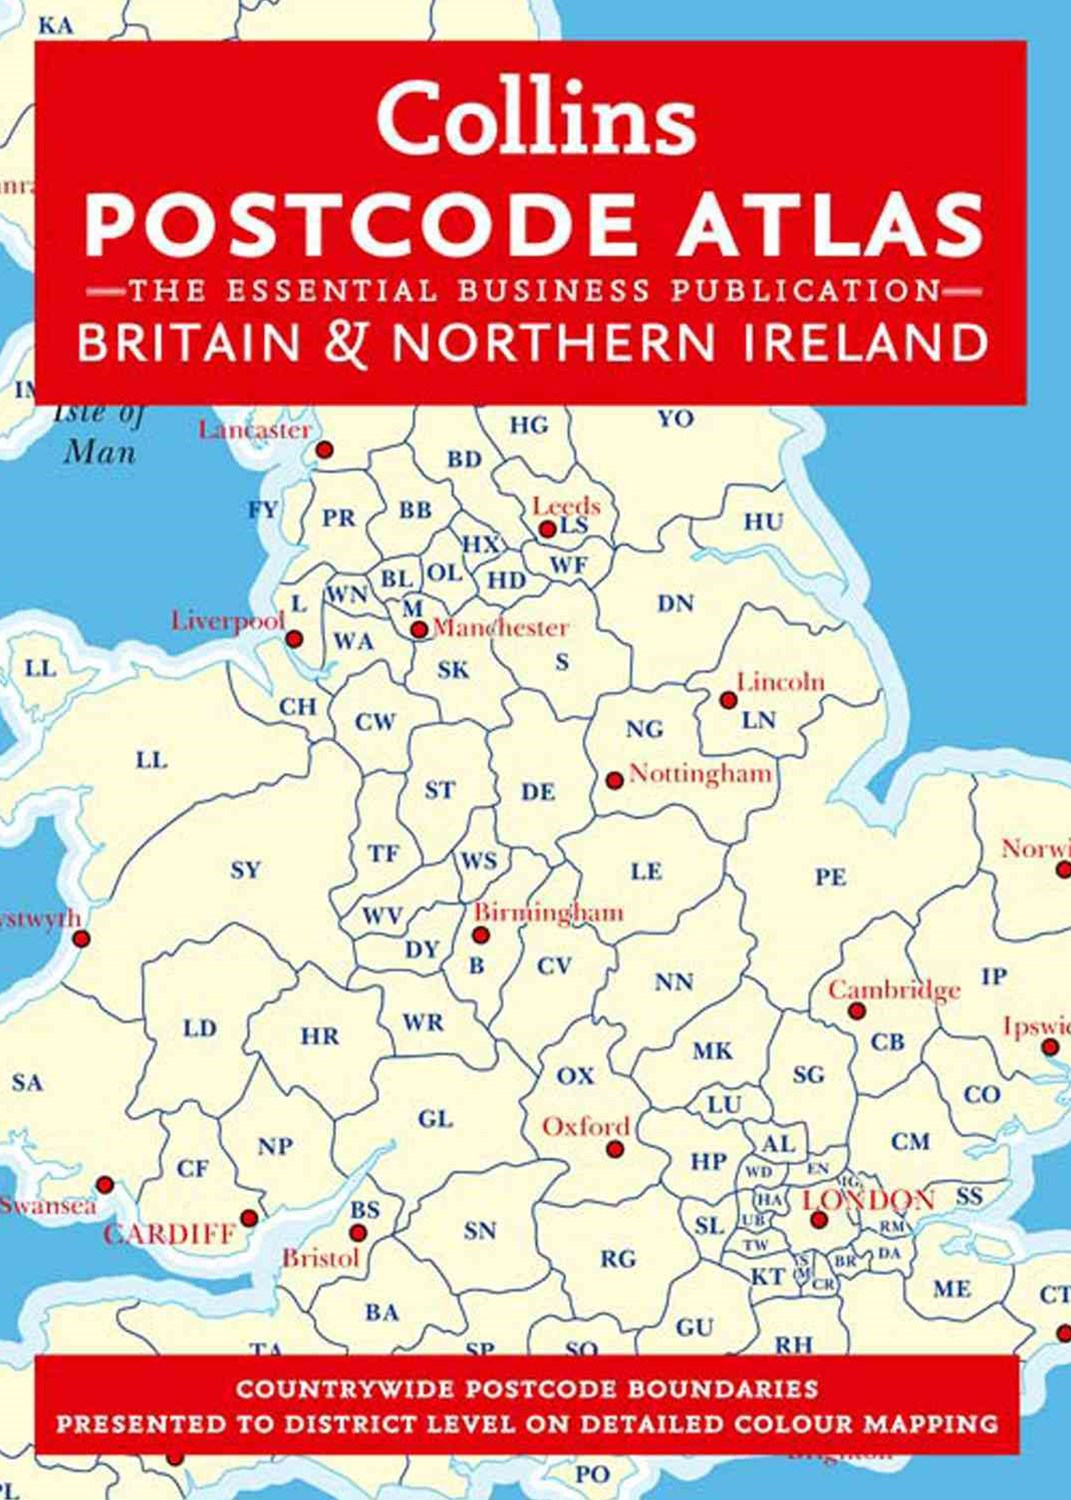 Postcode Atlas of Britain and Ireland